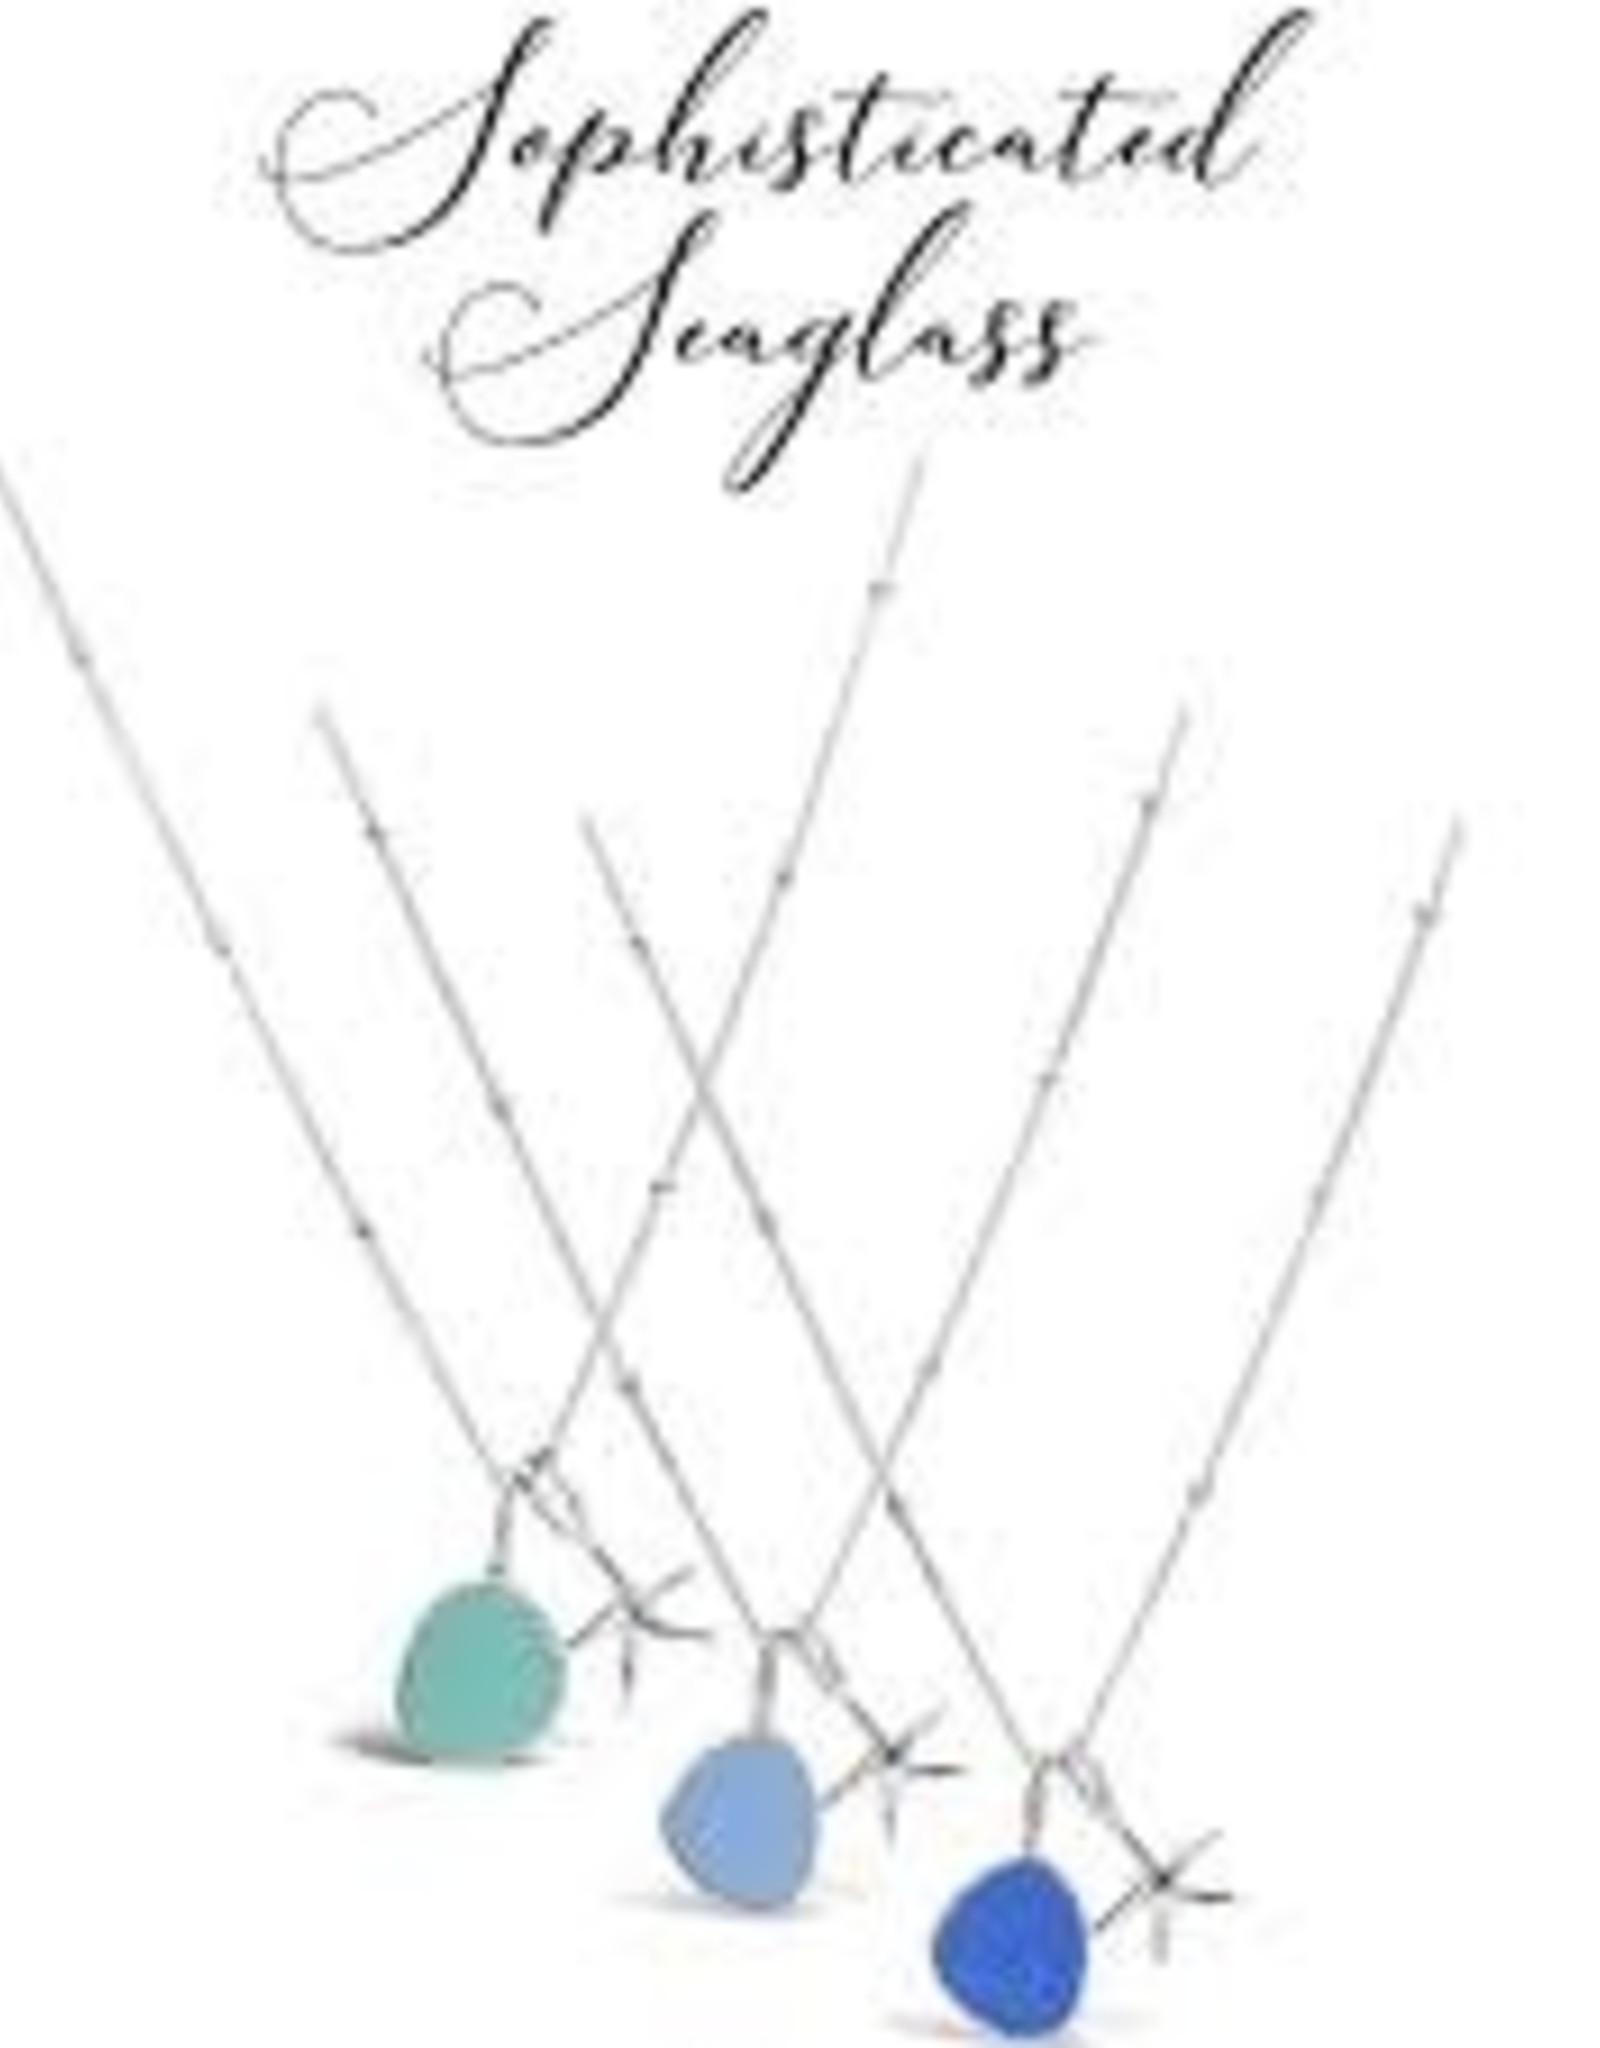 Stia Jewelry Necklace - Seaglass Sentiments